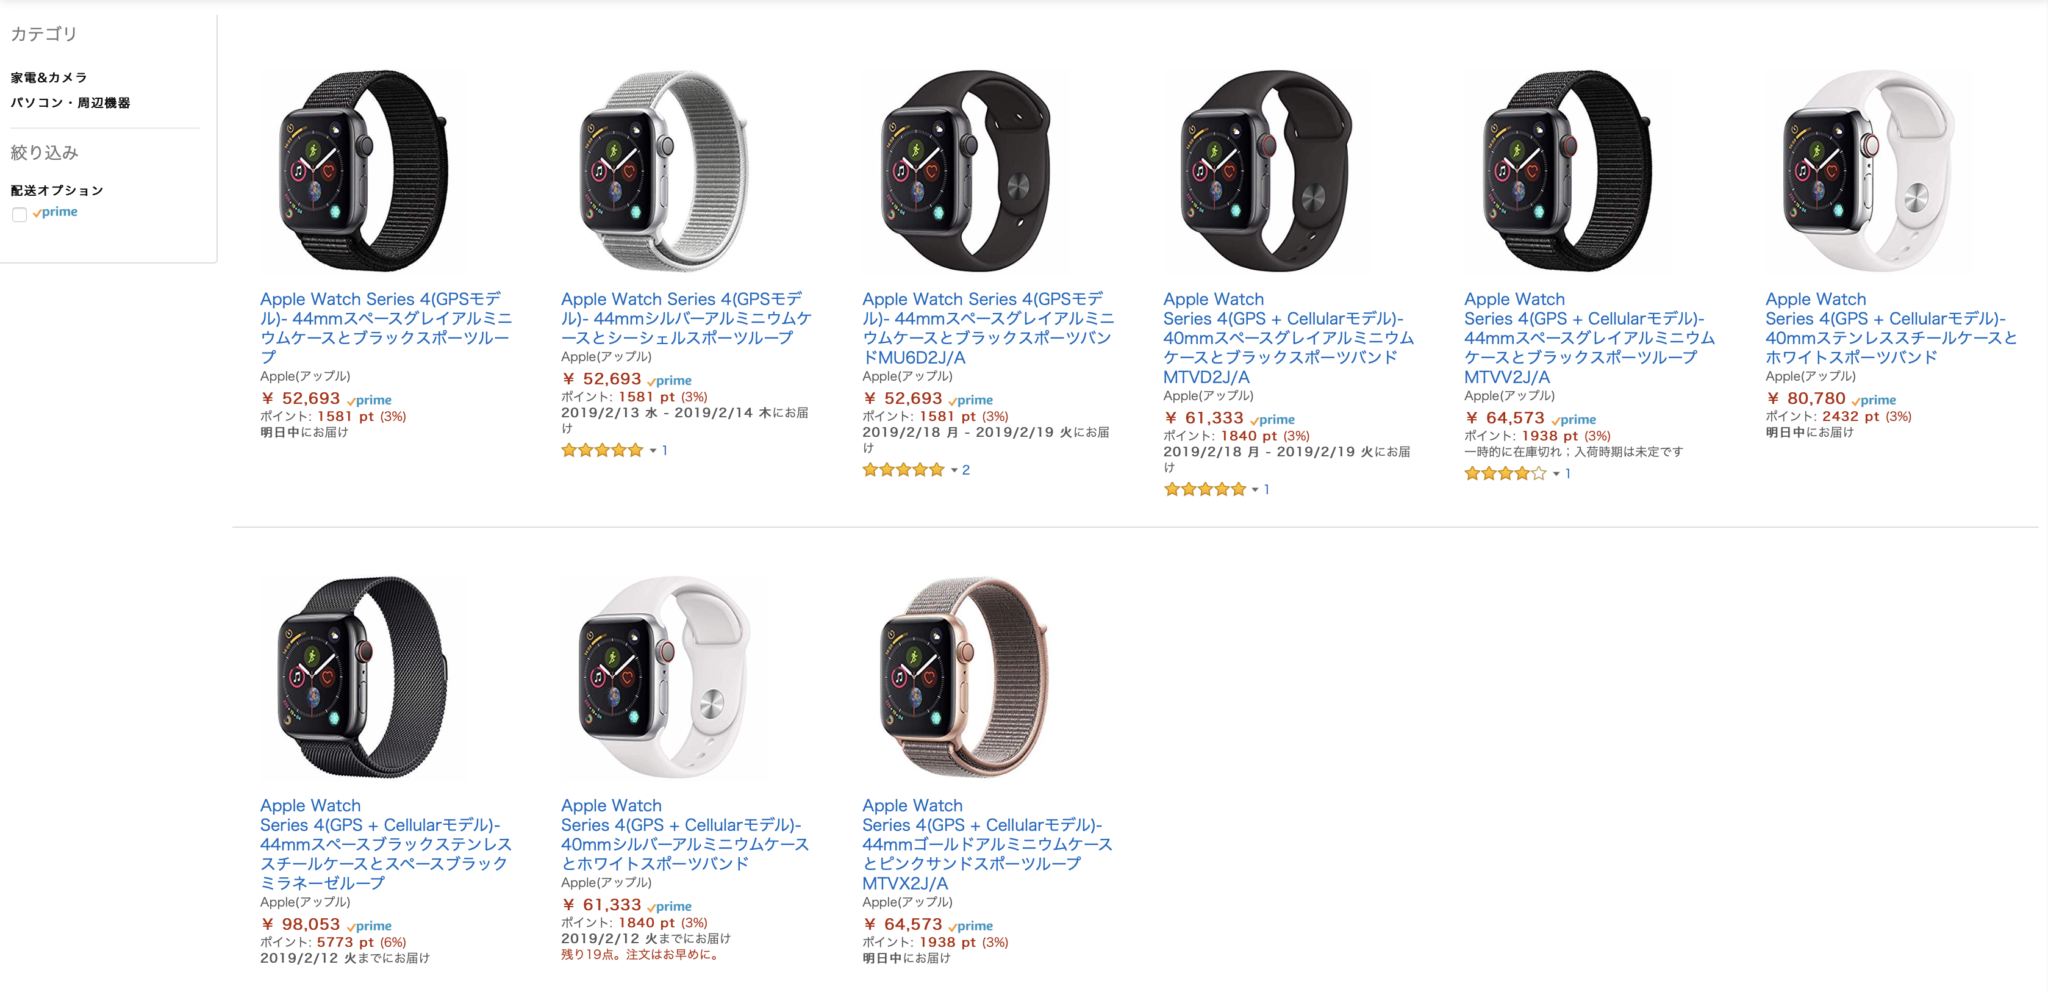 AmazonのApple Watch販売ページ